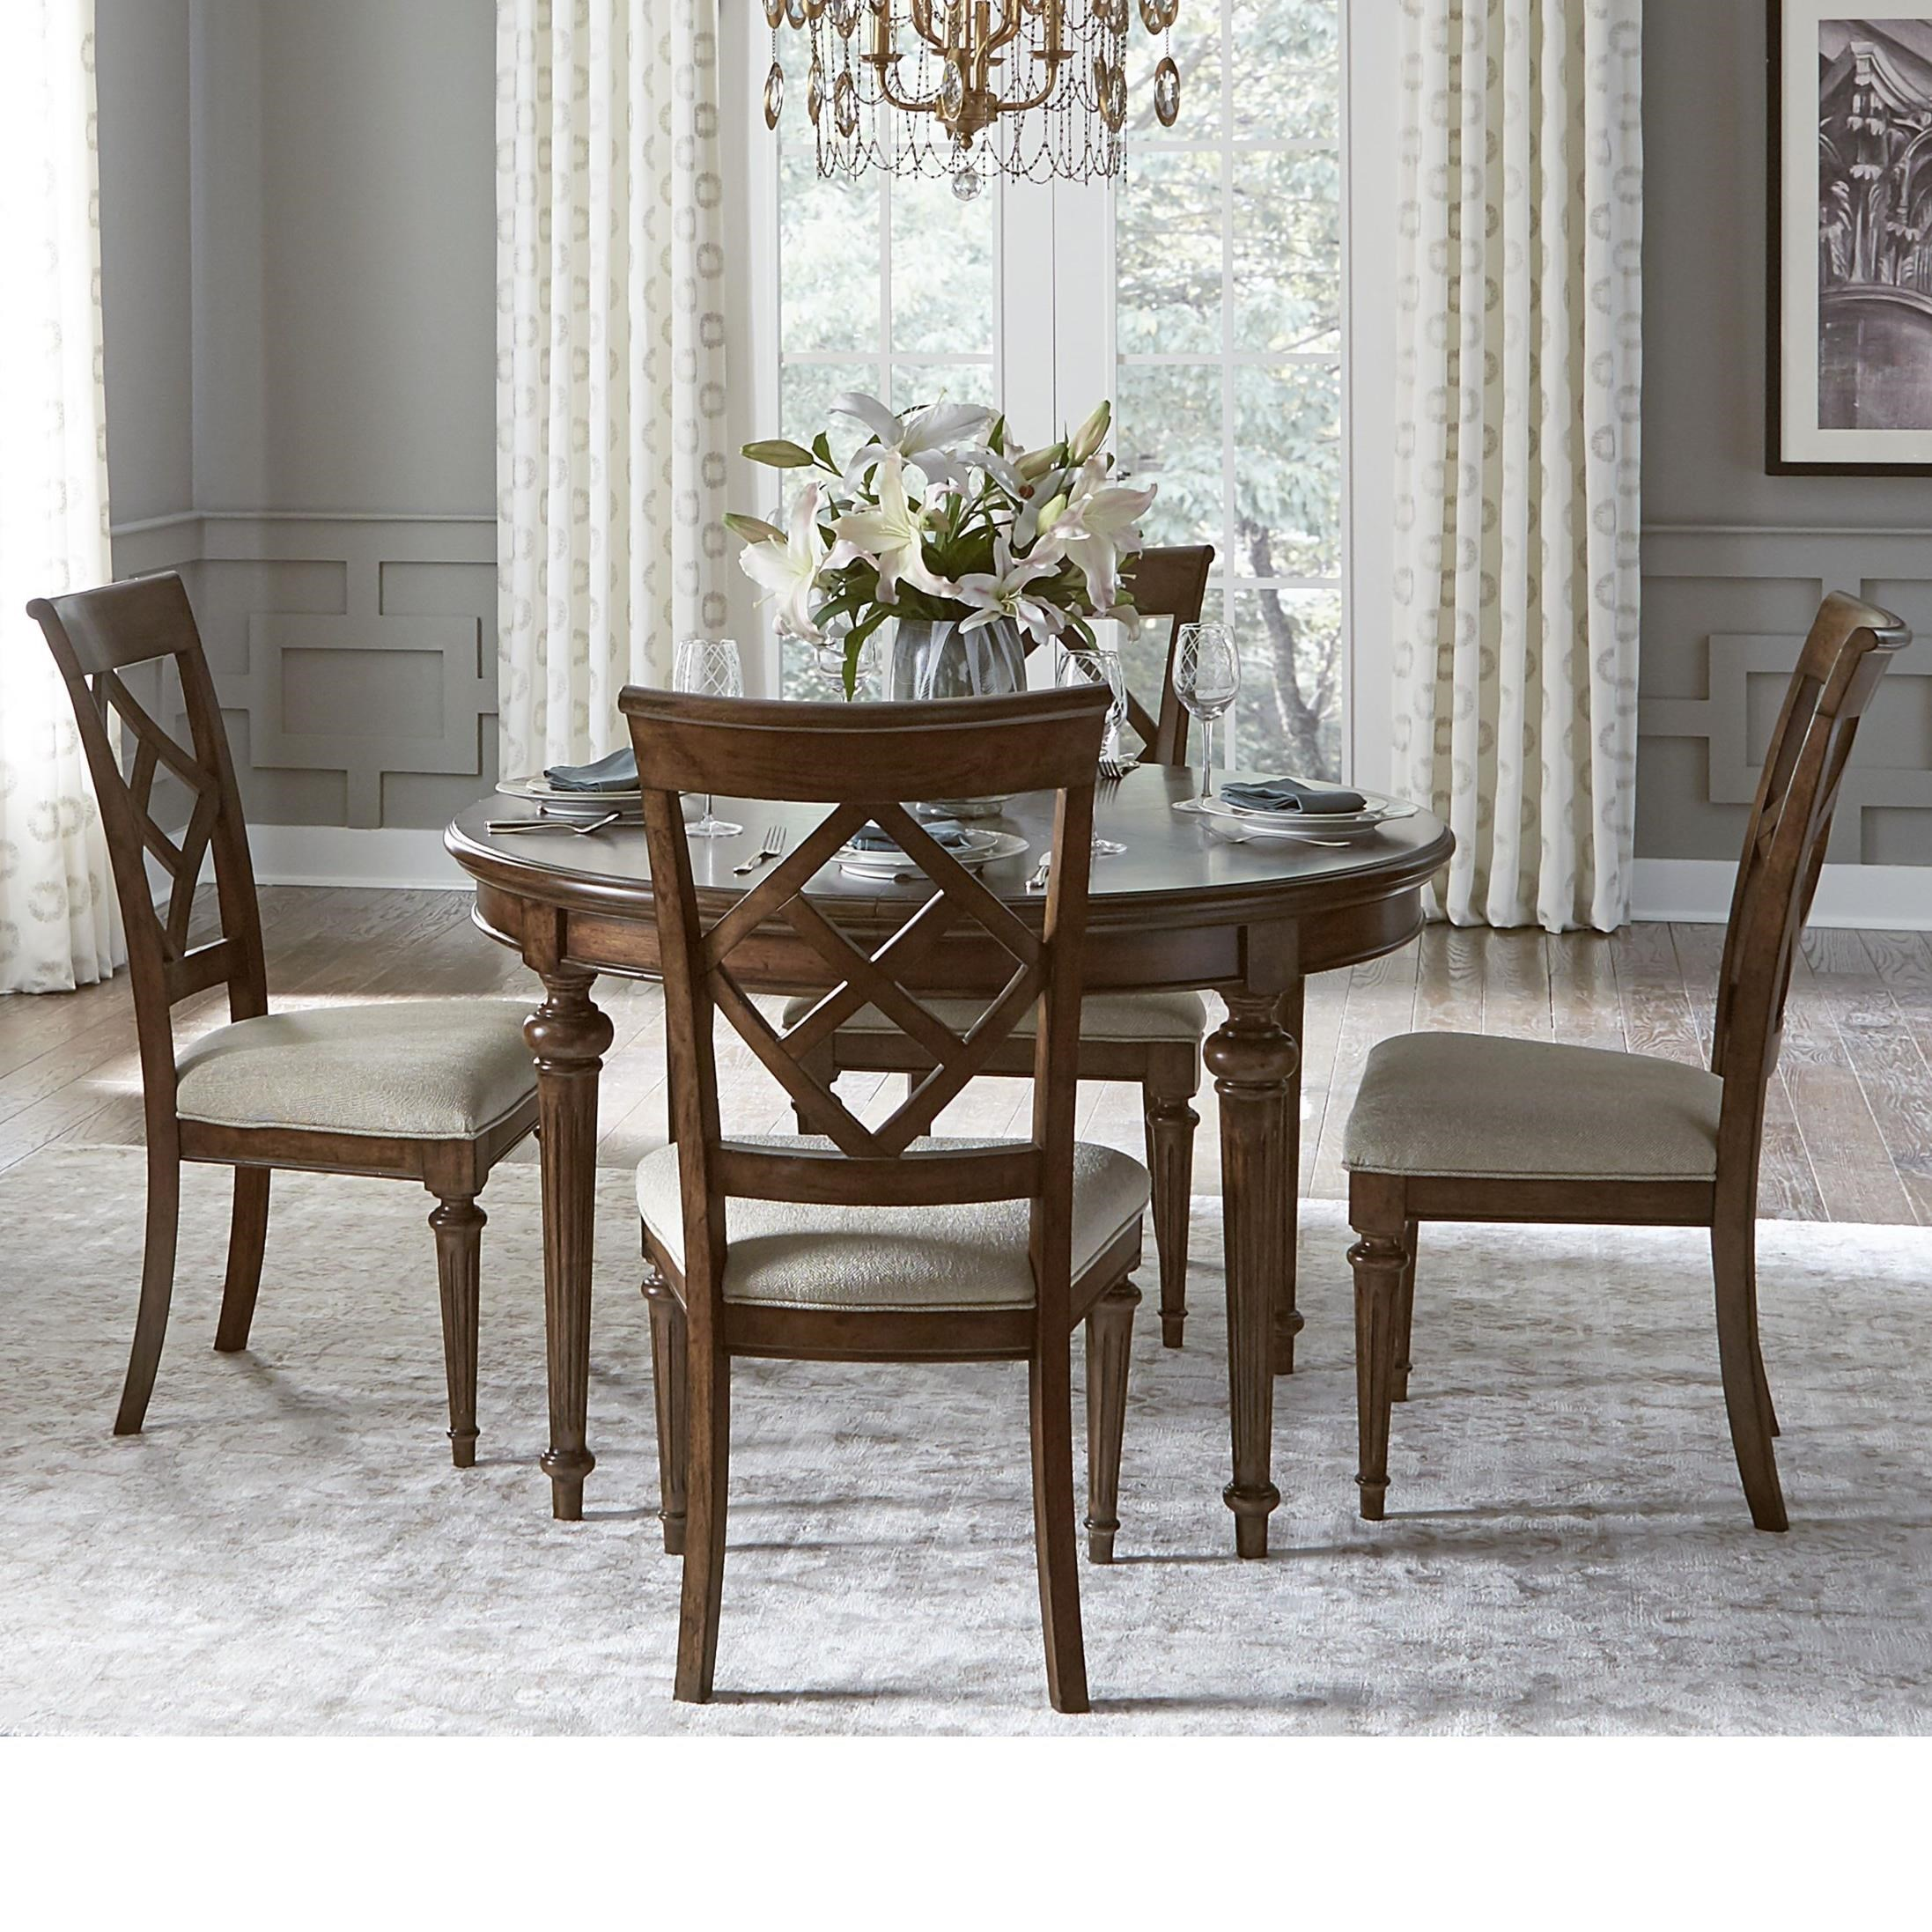 Legacy classic latham 5 piece dining set with round table for Legacy classic dining table